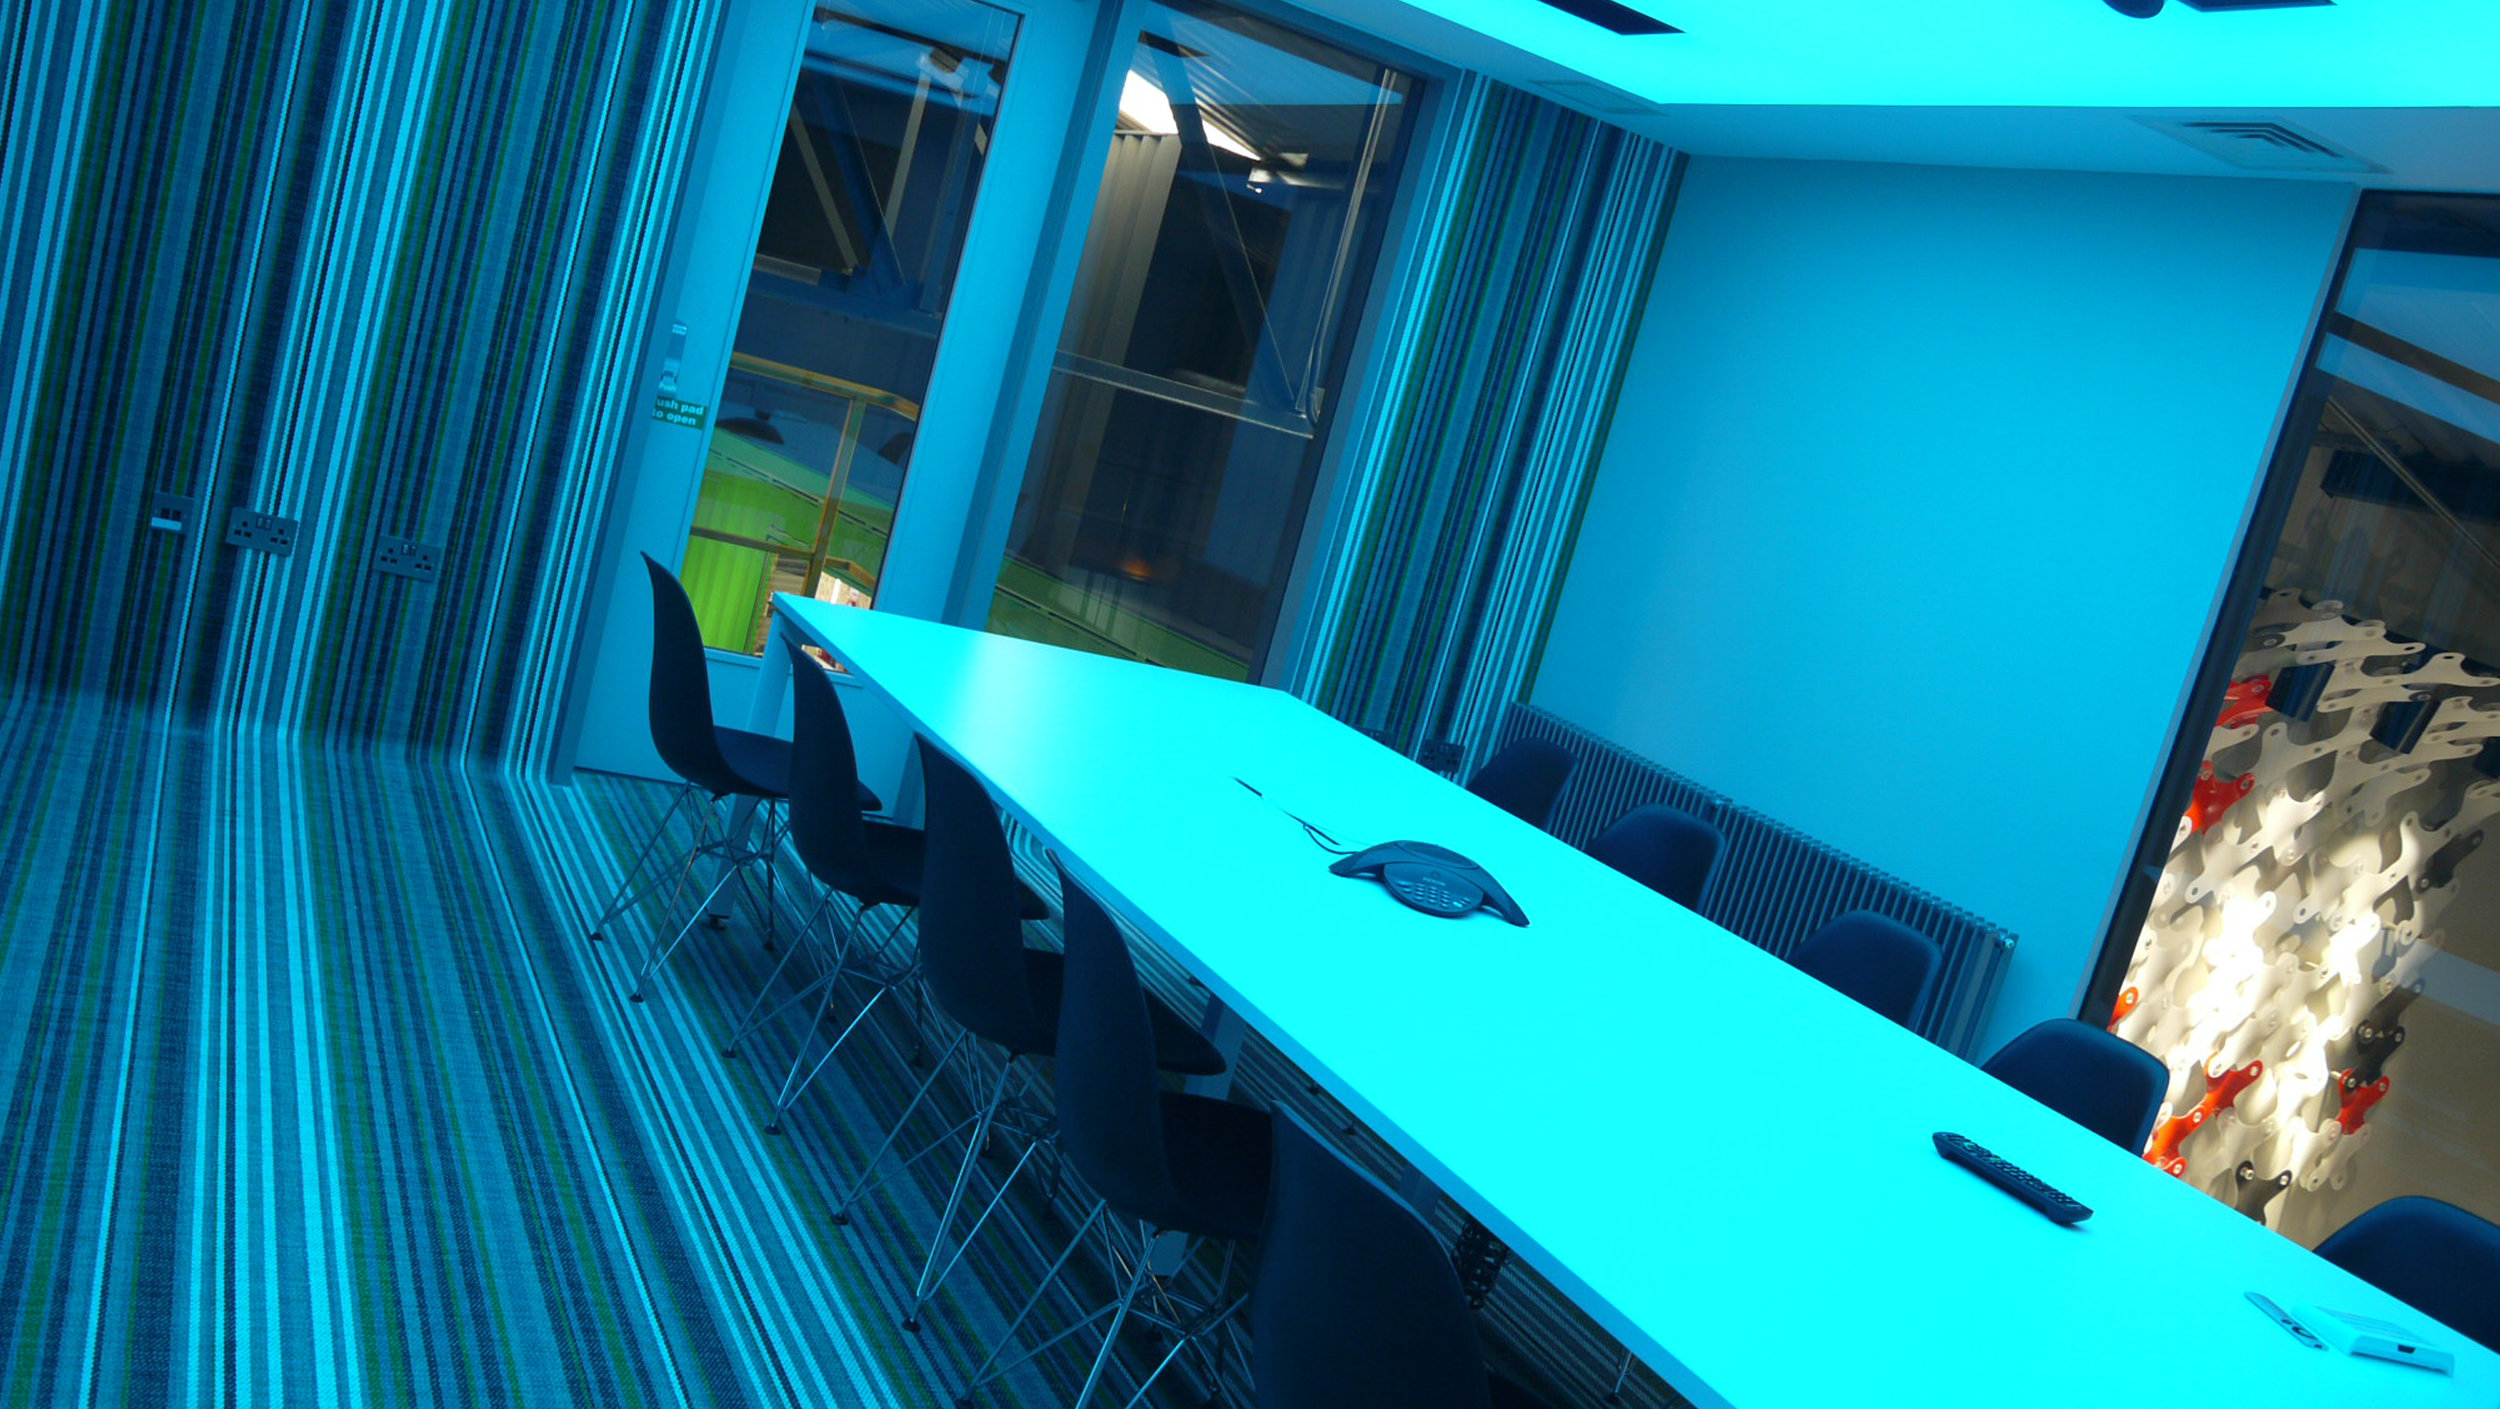 Meeting / Presentation room - Access to high spec meeting roomVideo conferencing facilities